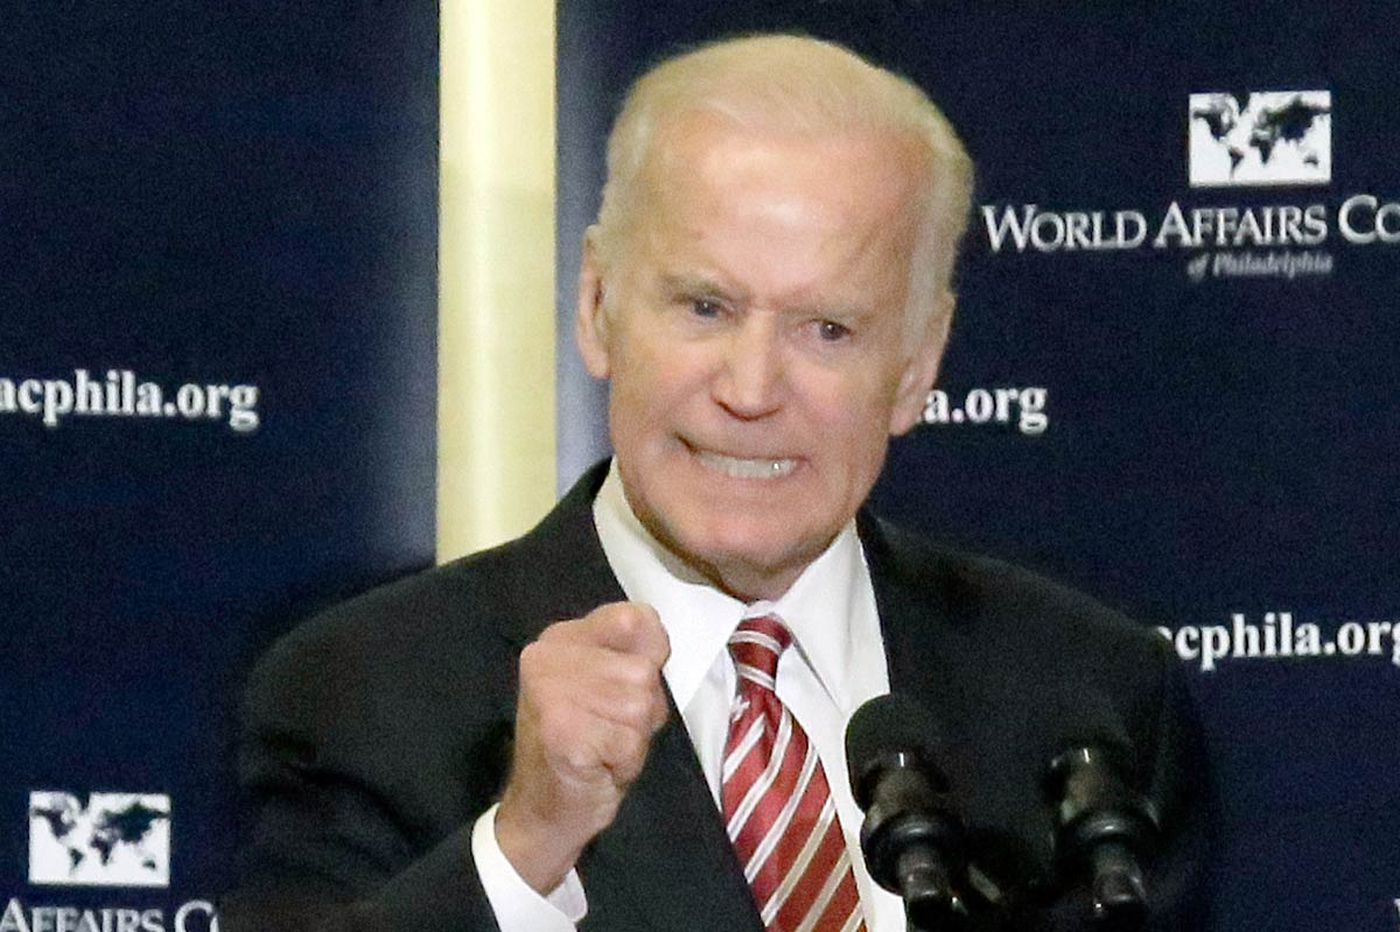 Biden urges support of White House's 'cancer moonshot'